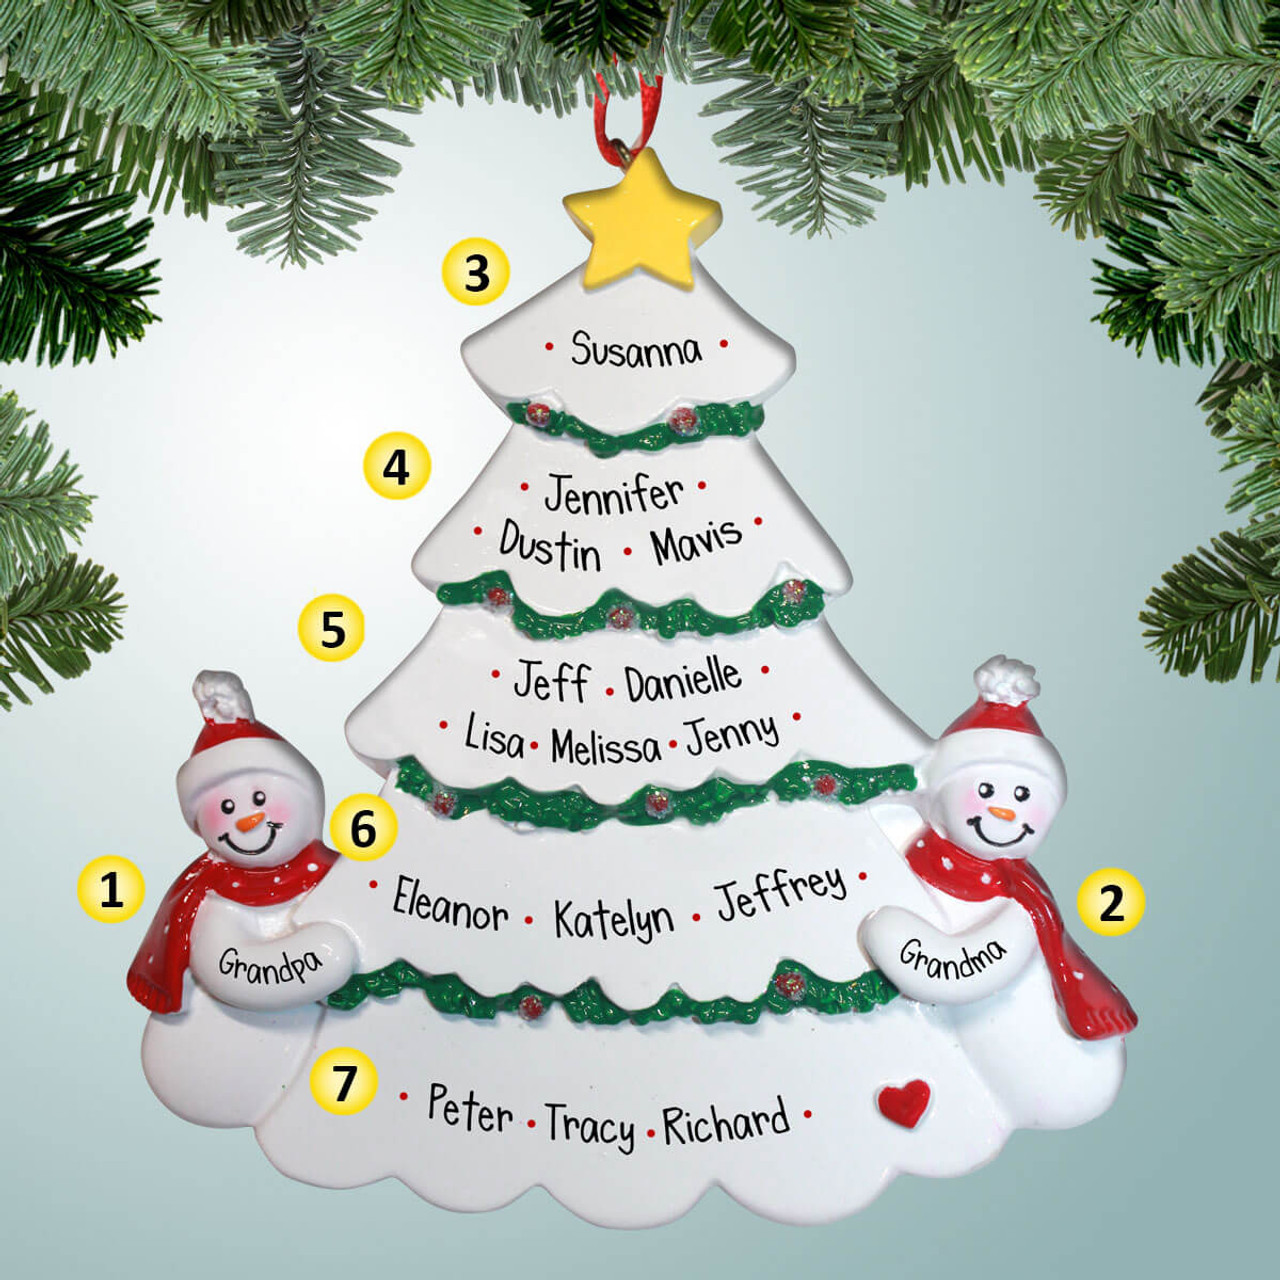 Christmas Ornaments Personalized.Large Family Christmas Tree